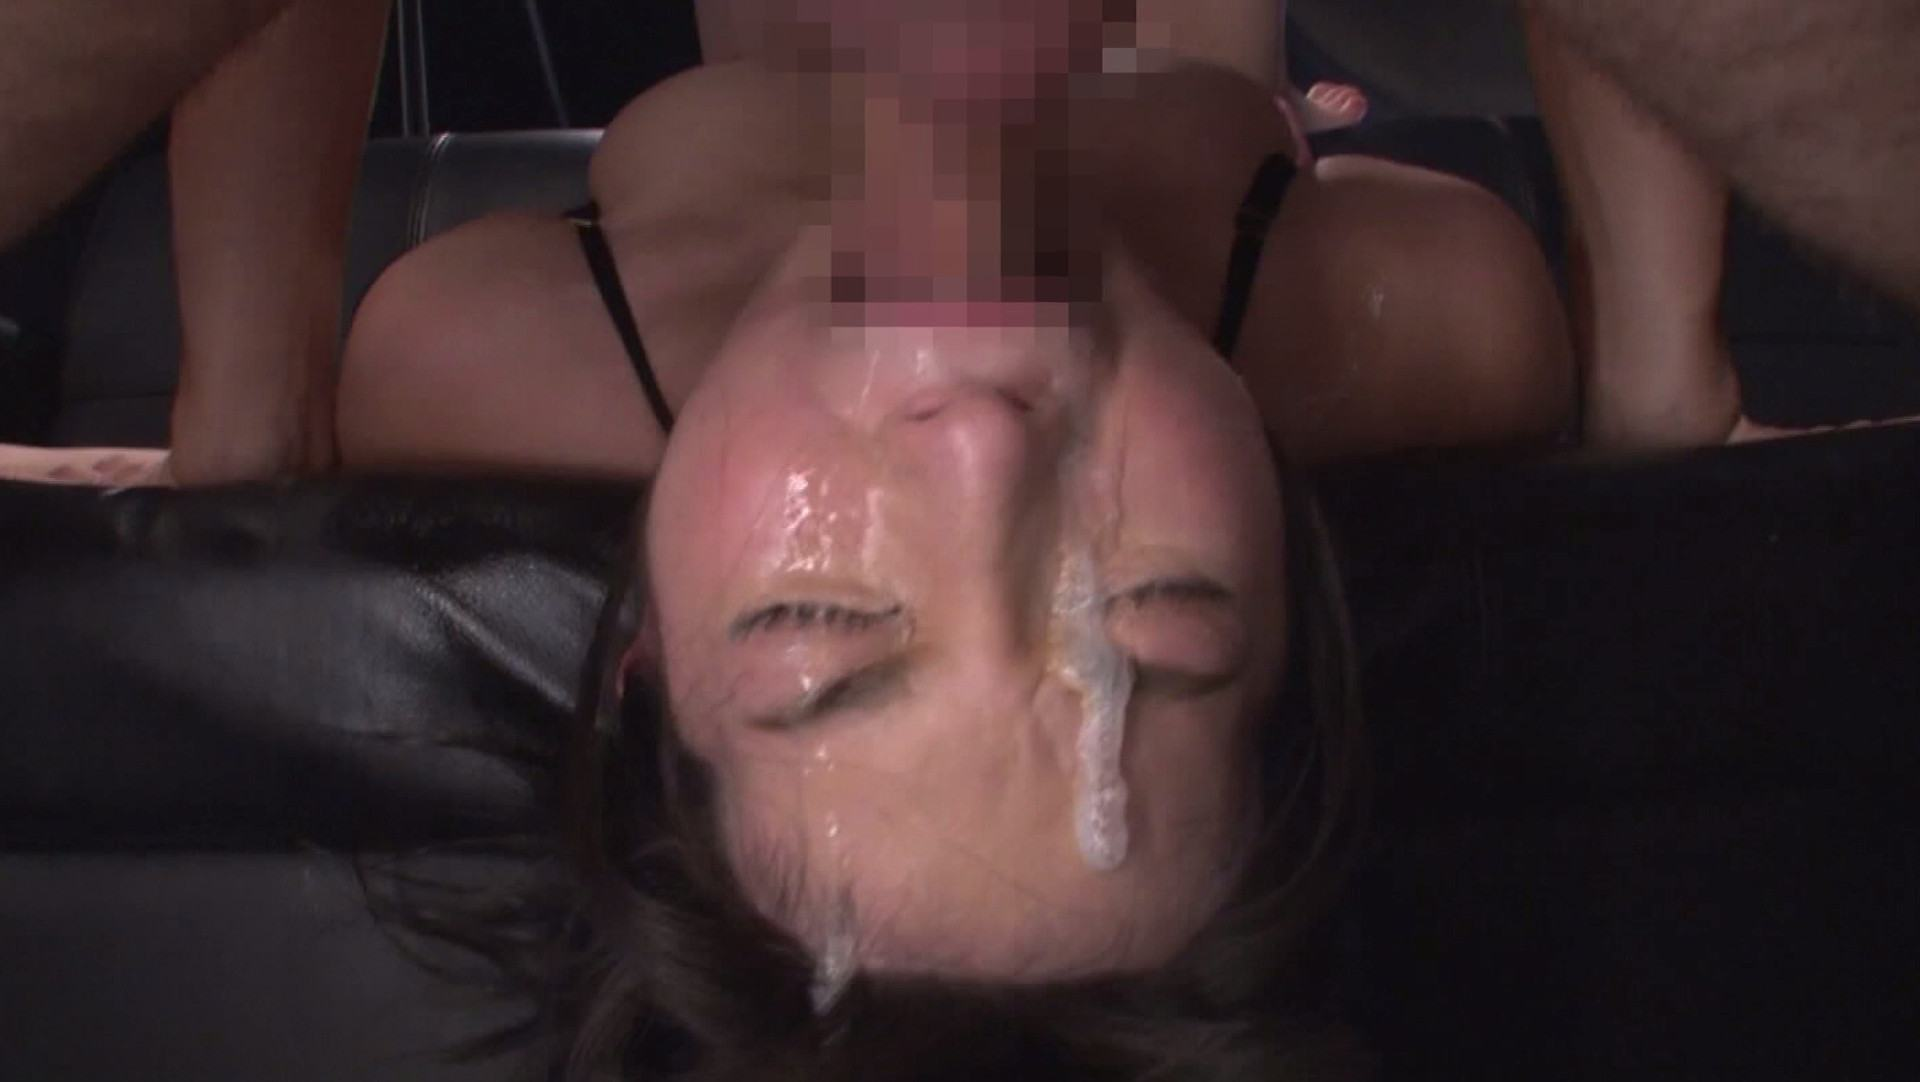 Pics of Japanese girl deep throating and face fucking